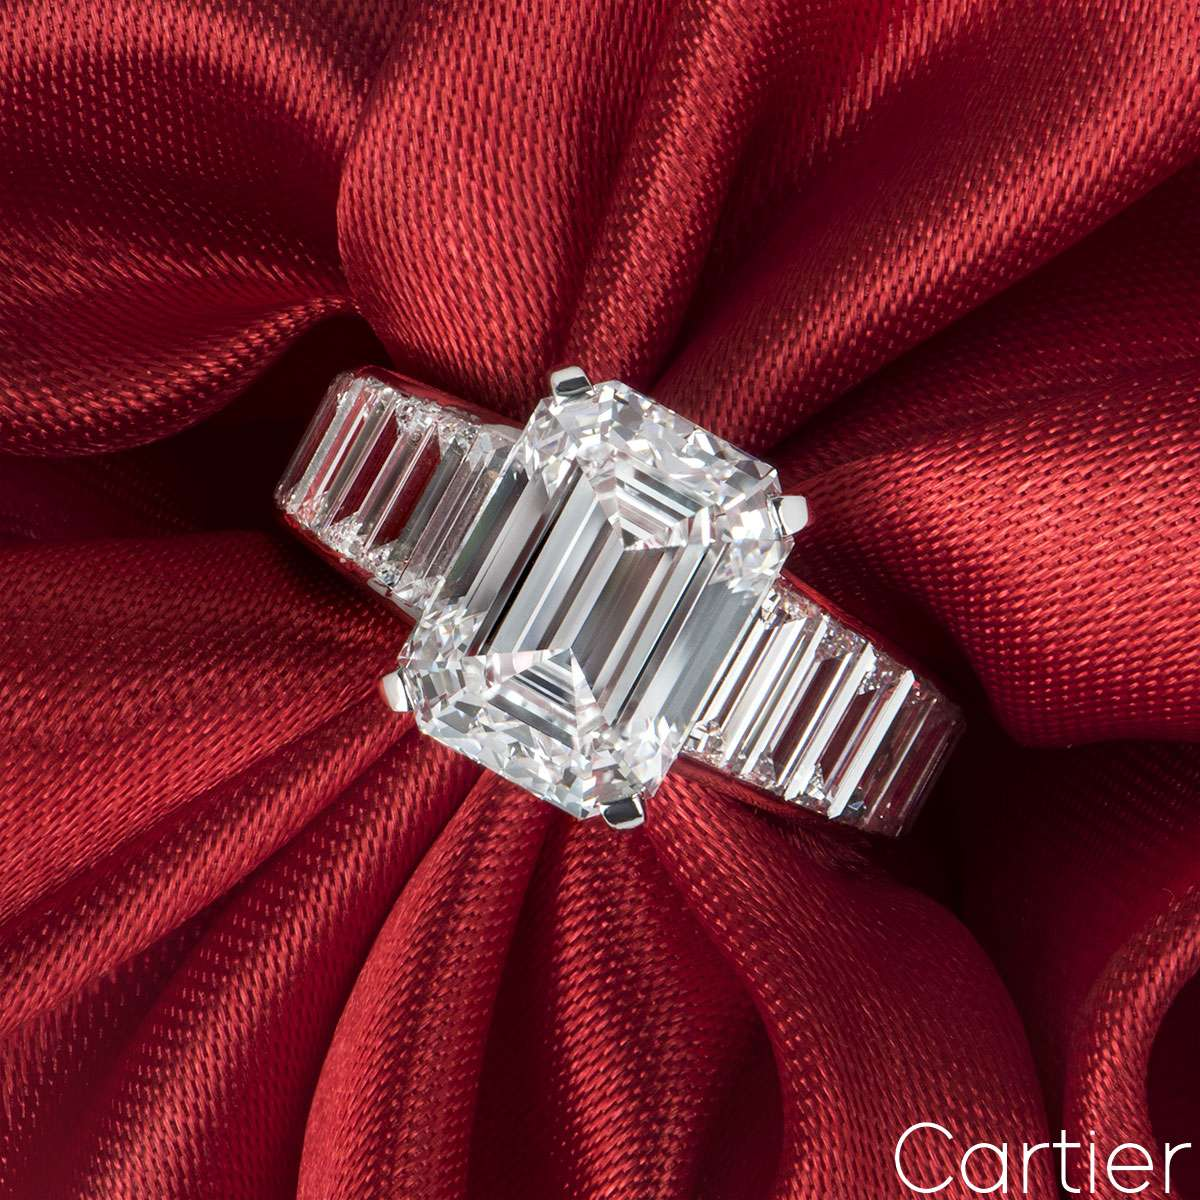 Cartier Platinum Emerald Cut Diamond Ring 4.12ct E/VVS2